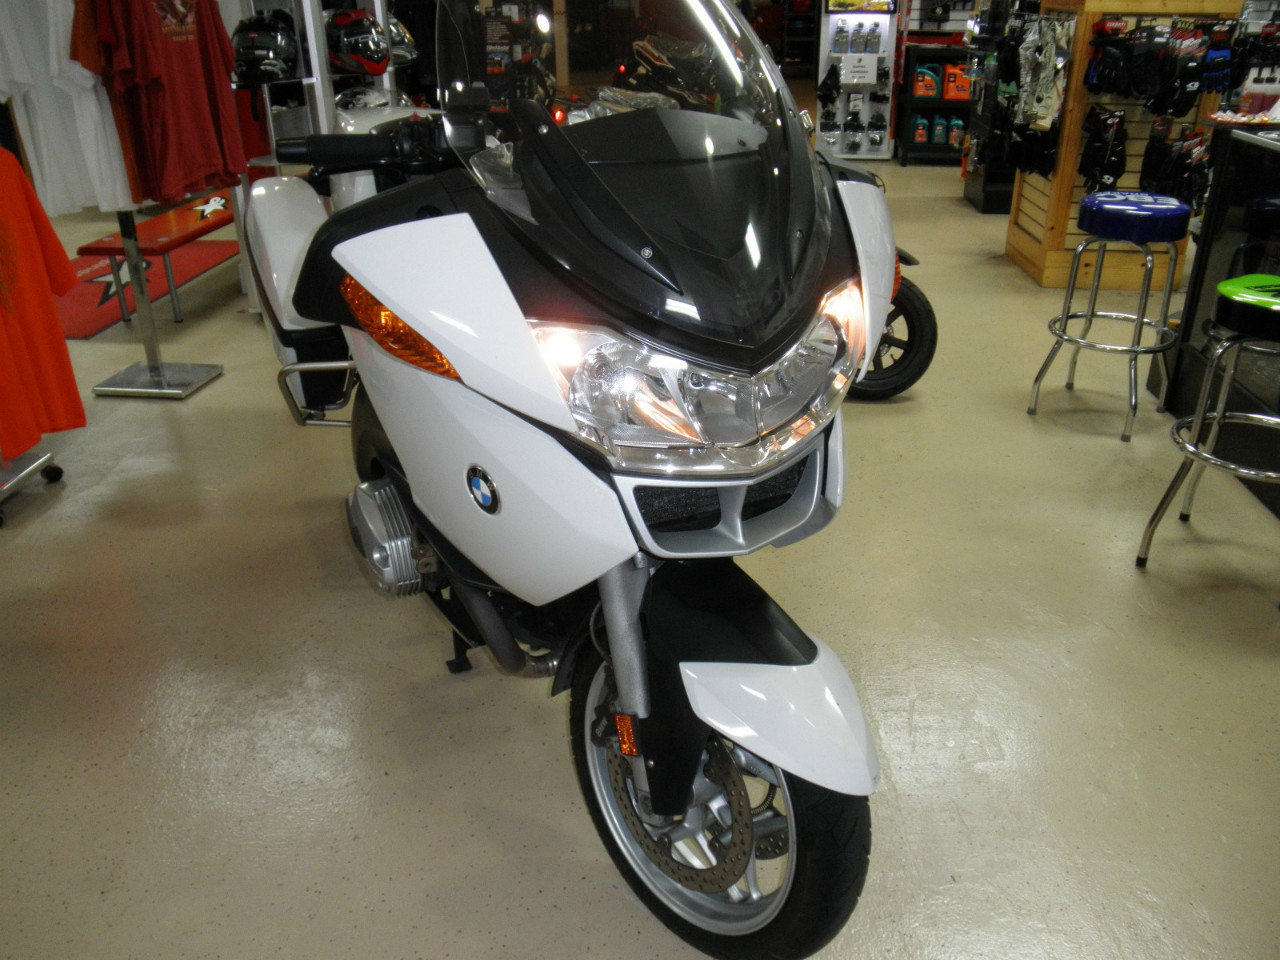 2006 BMW R1200RTP, motorcycle listing